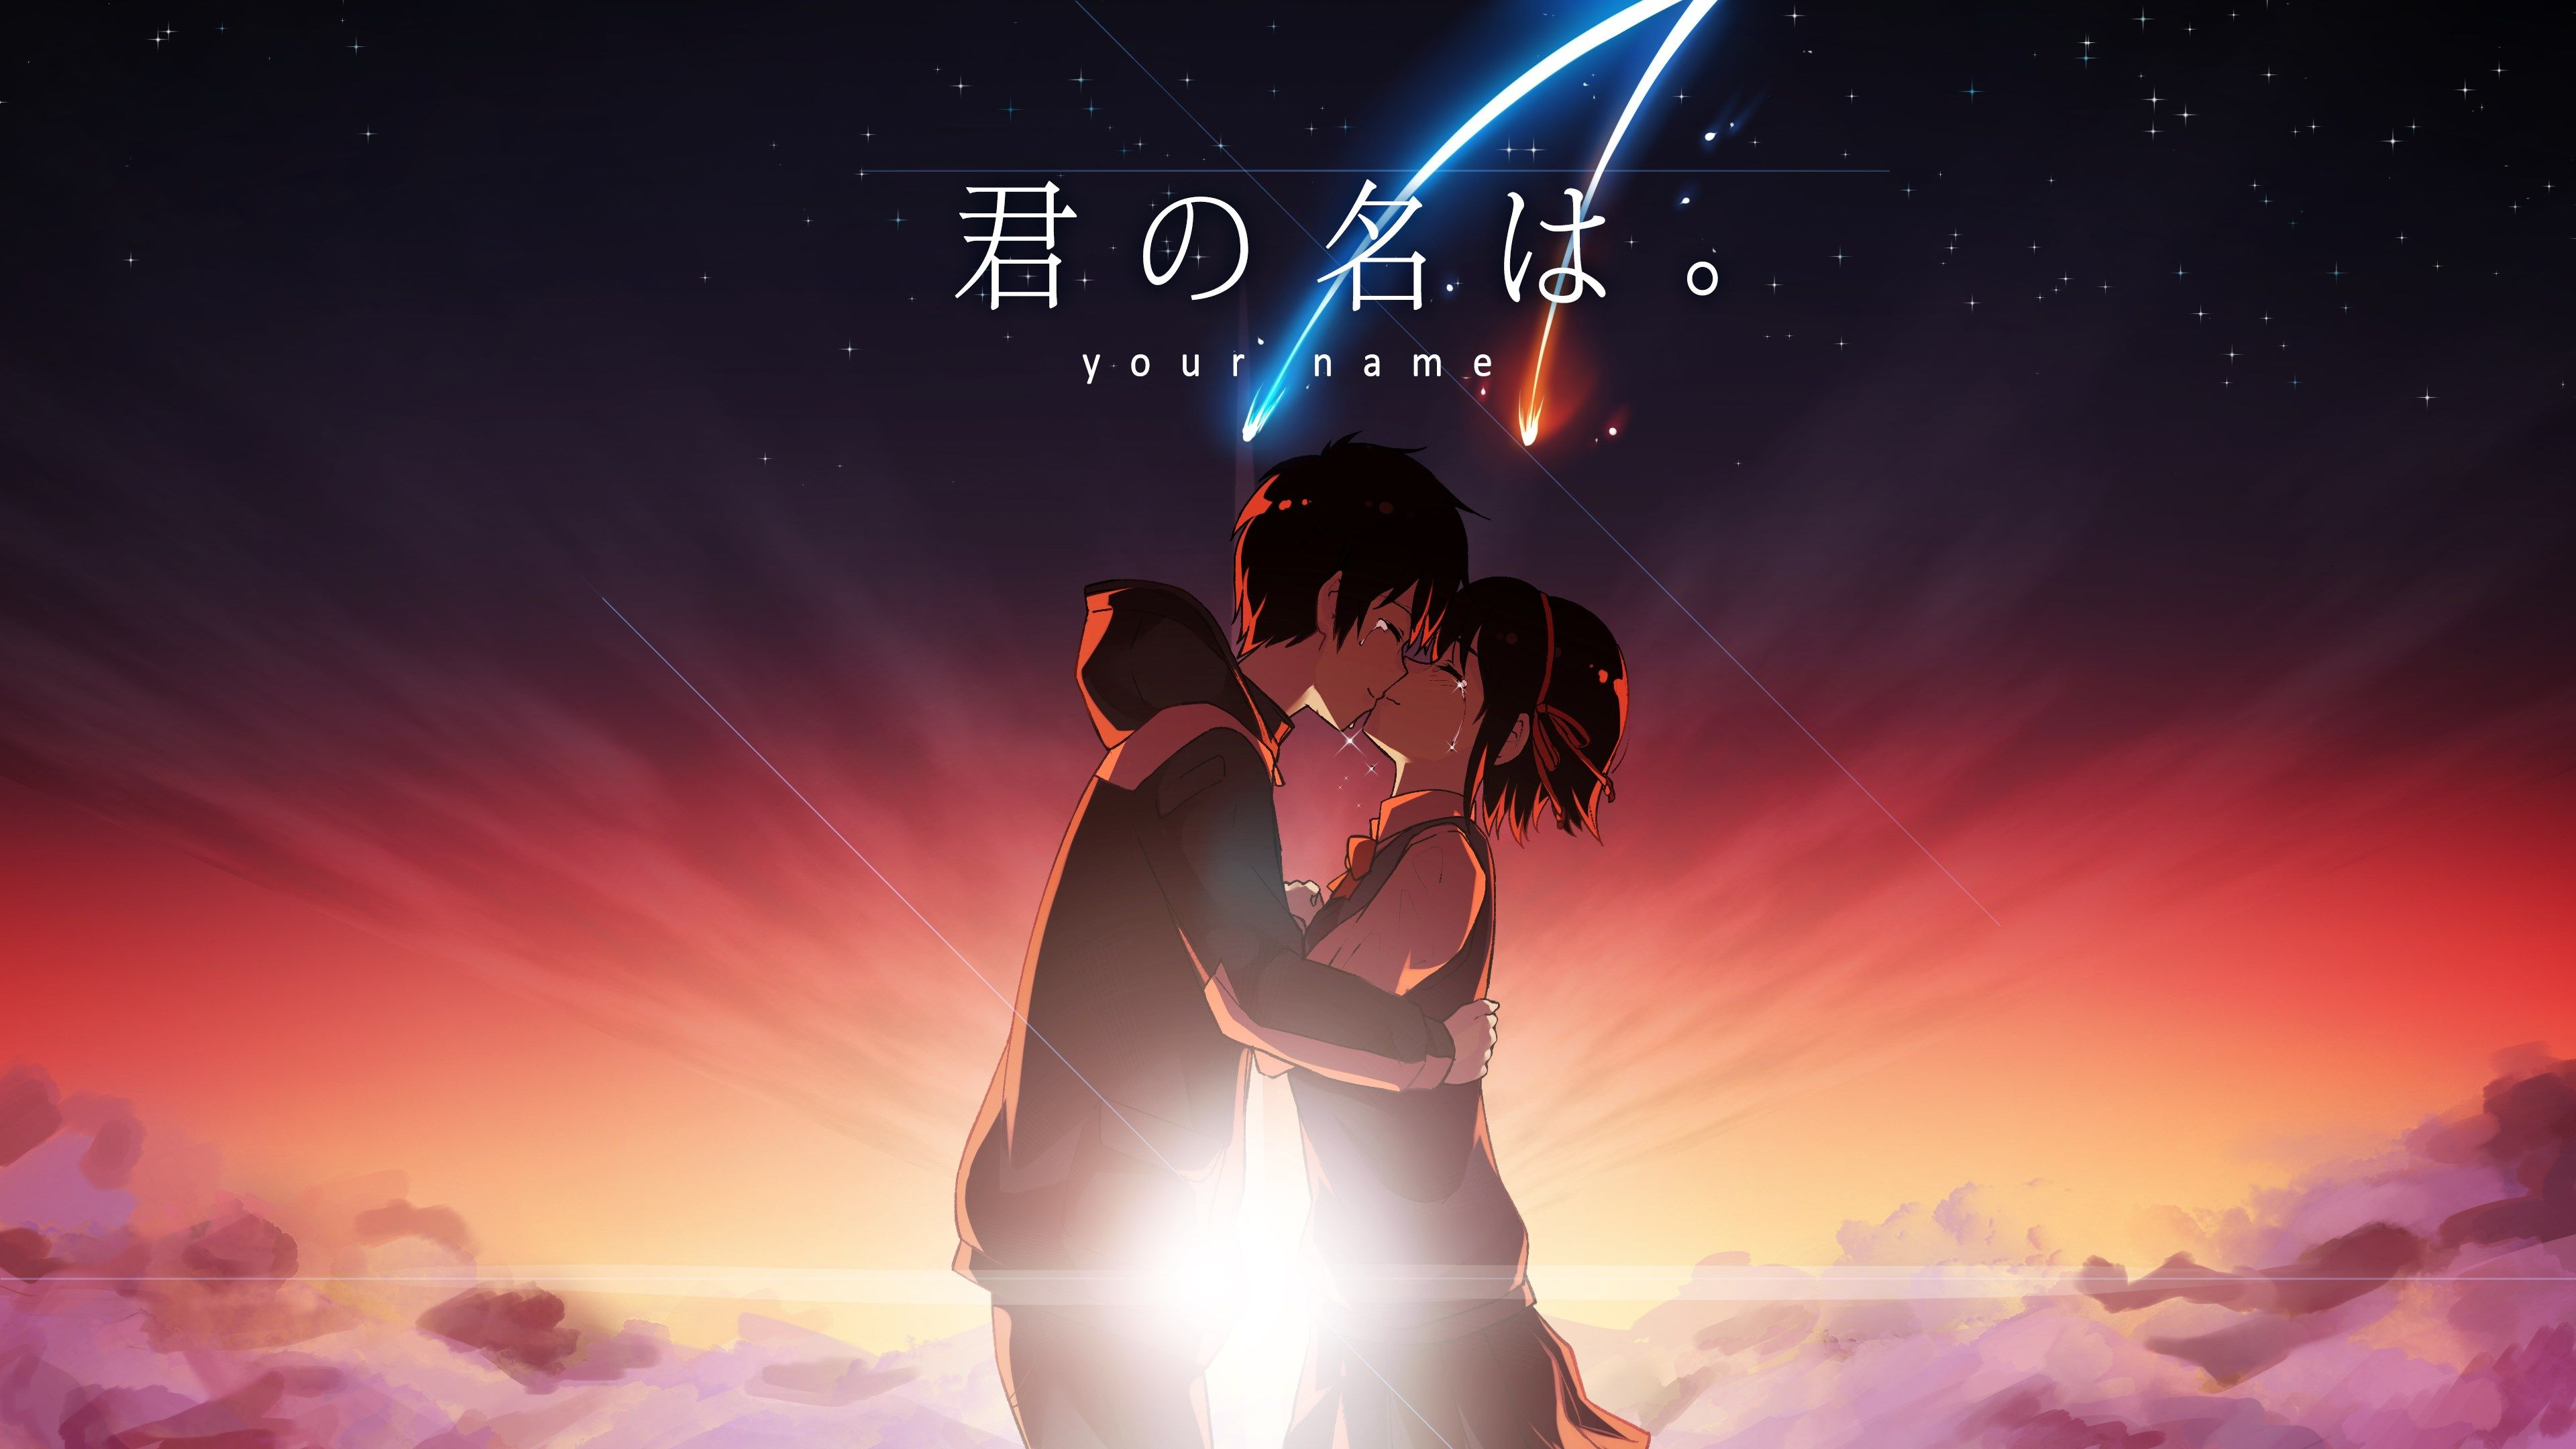 46 Anime 4k Your Name Wallpapers On Wallpapersafari